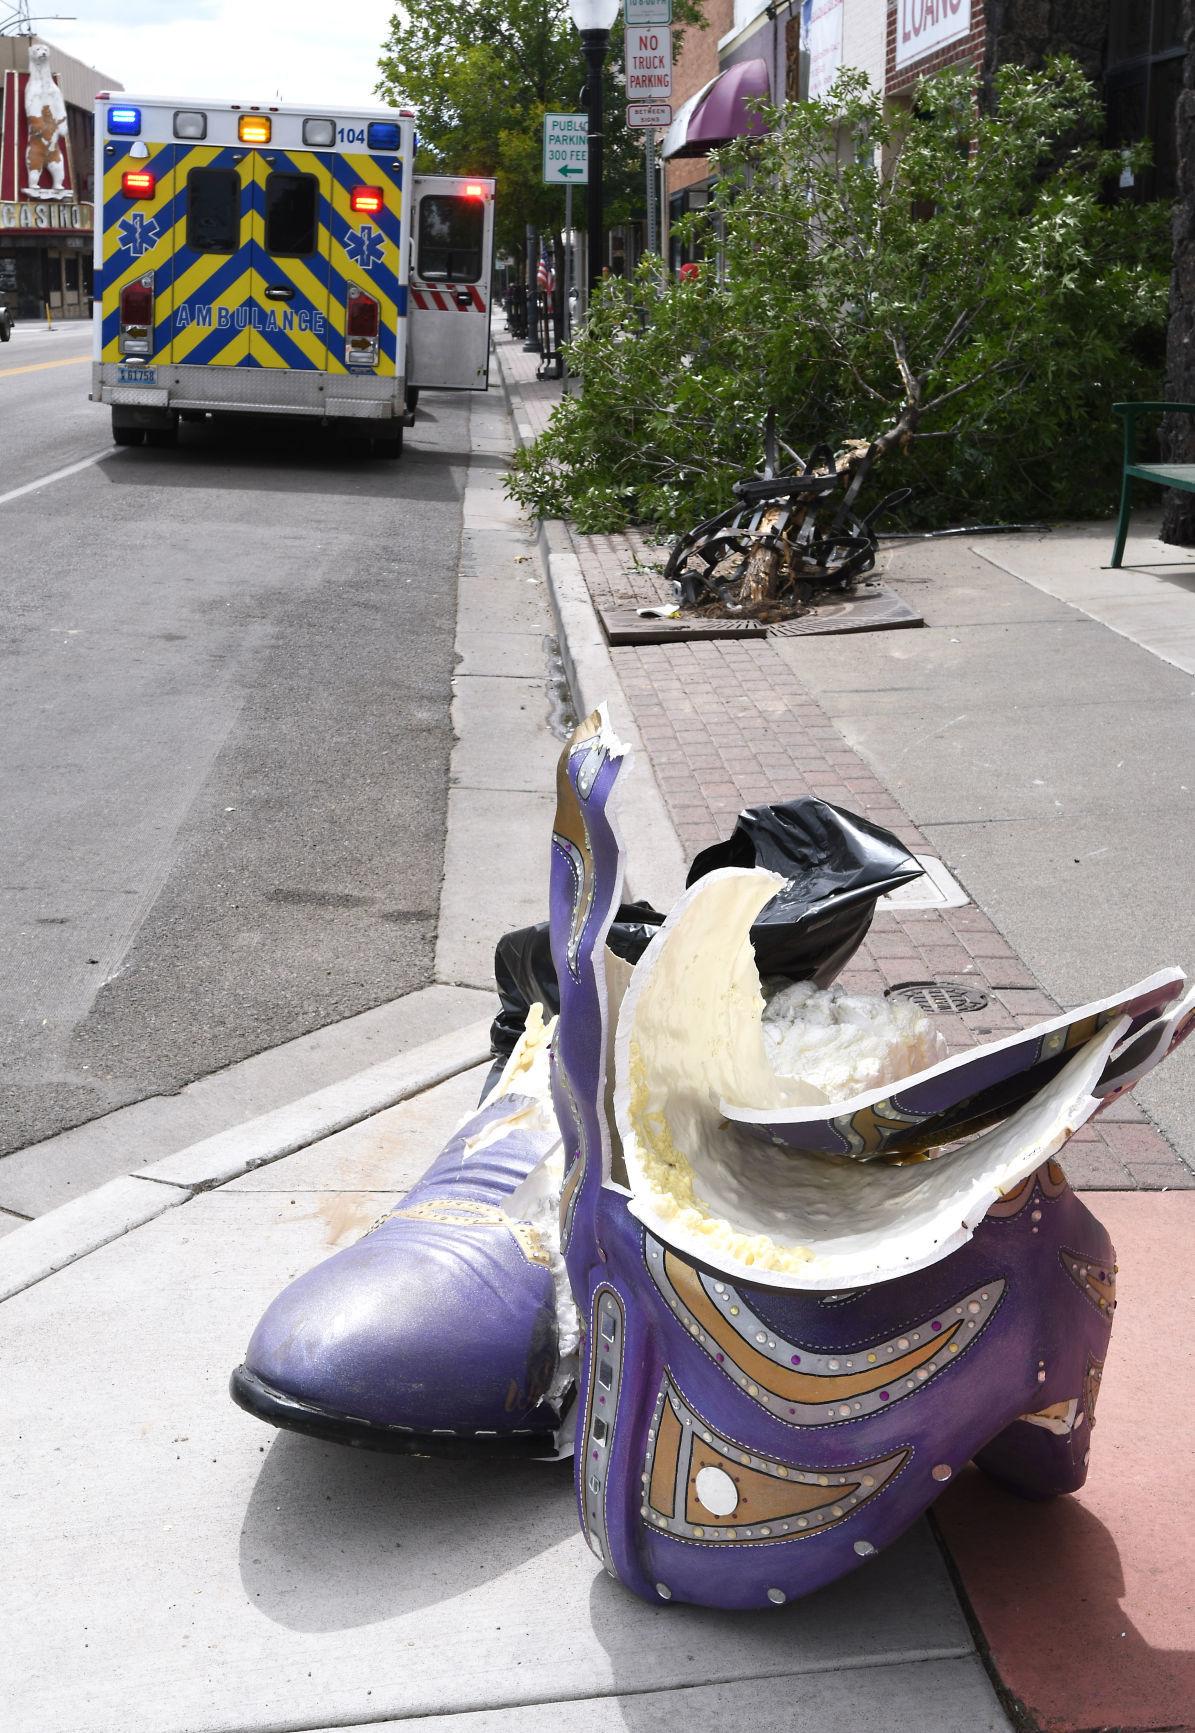 Collision takes out cowboy boot